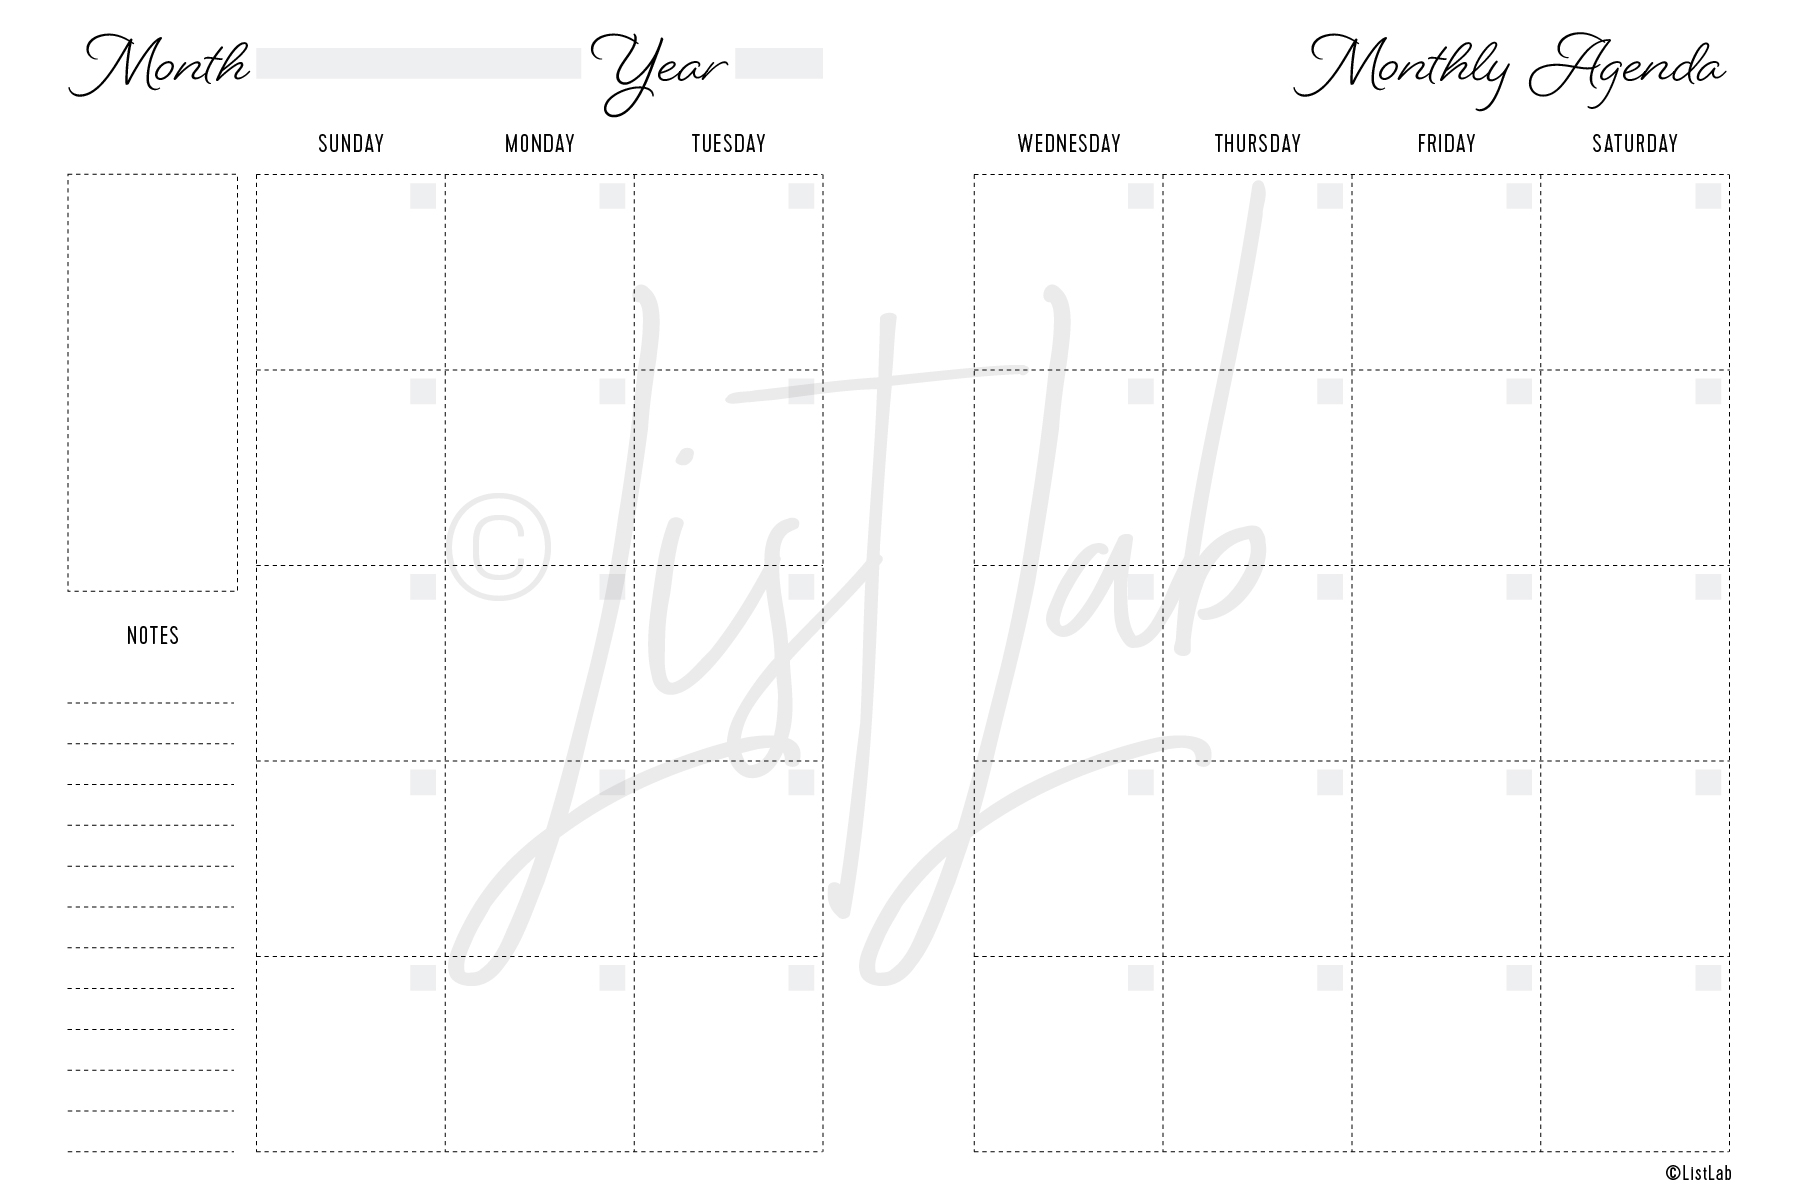 2-PAGE MONTHLY SUN TO SAT (MO2P SUN TO SAT)